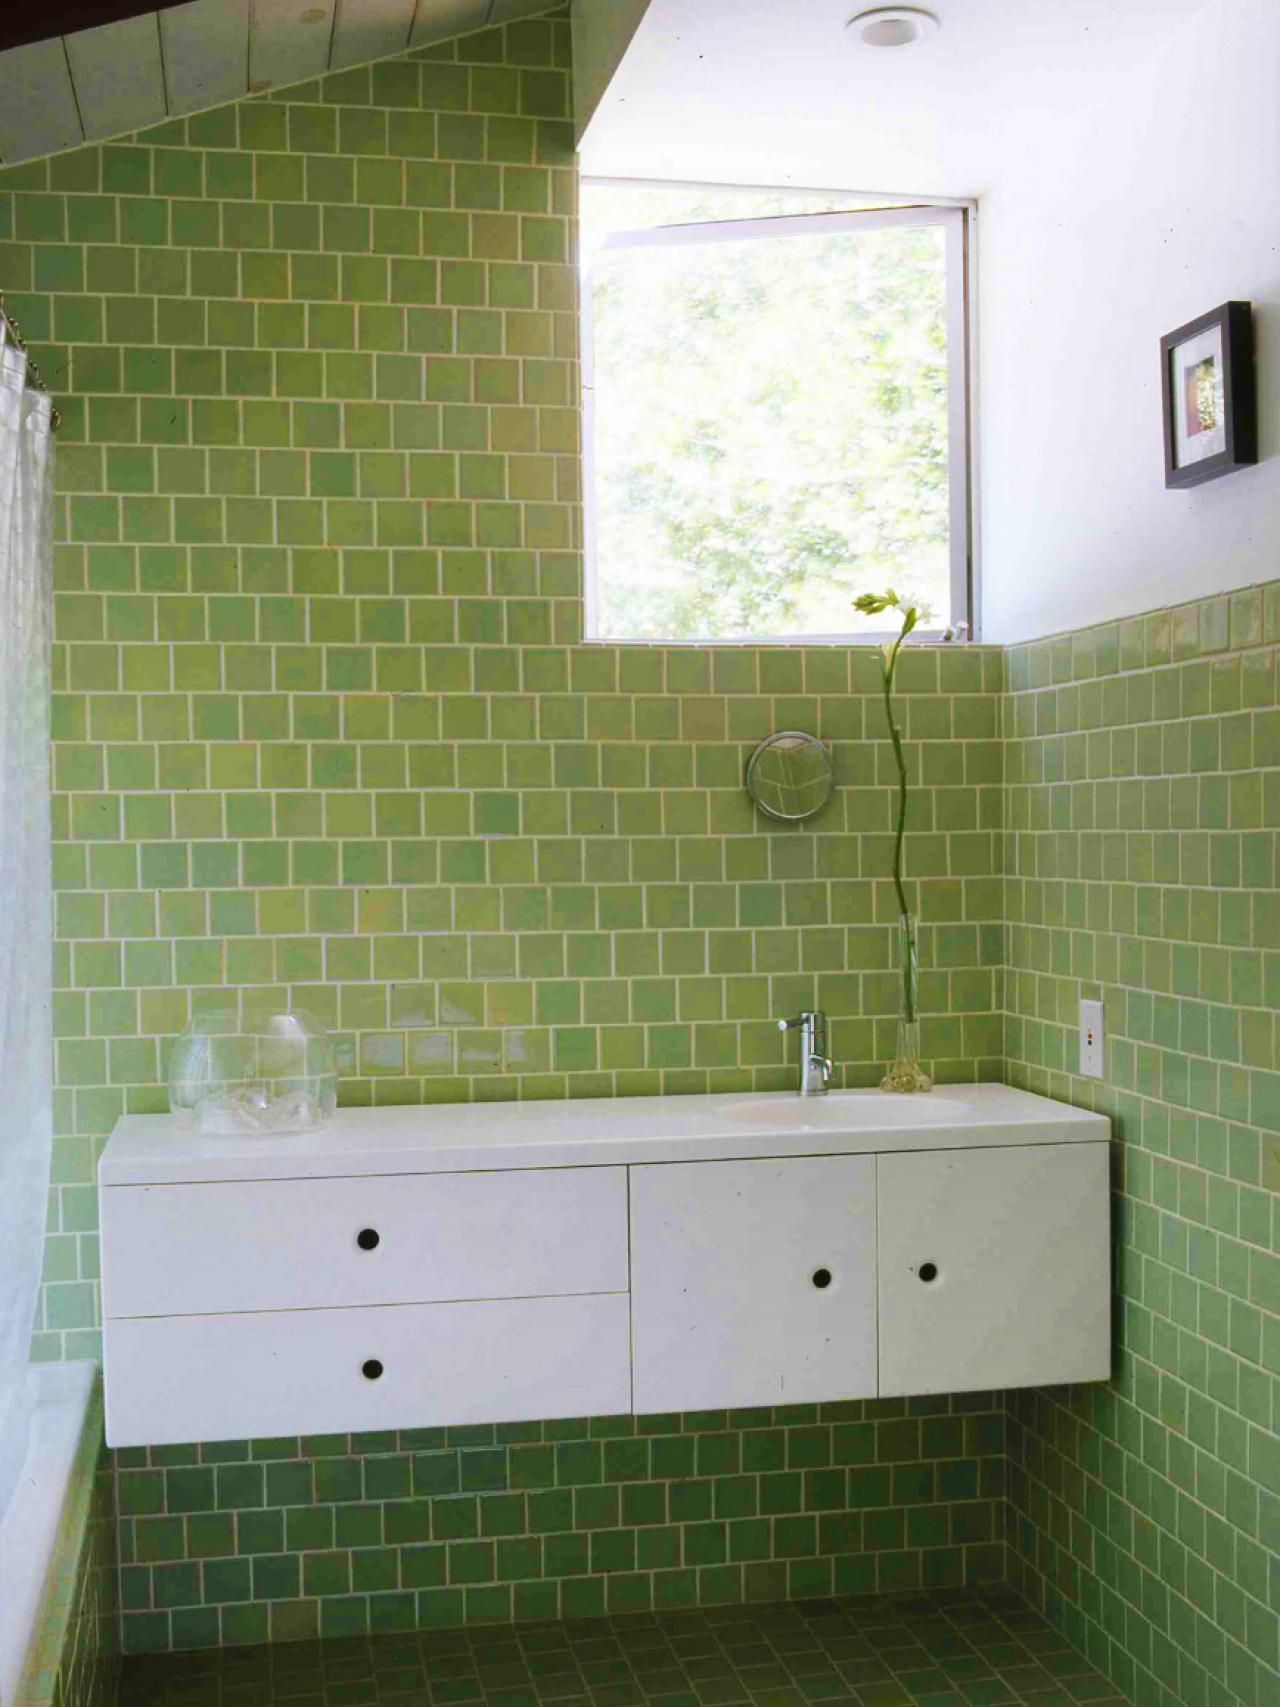 Multiple Shades Of Green Tile In Bathroom Bathroom Tile Designs Green Tile Bathroom Green Bathroom